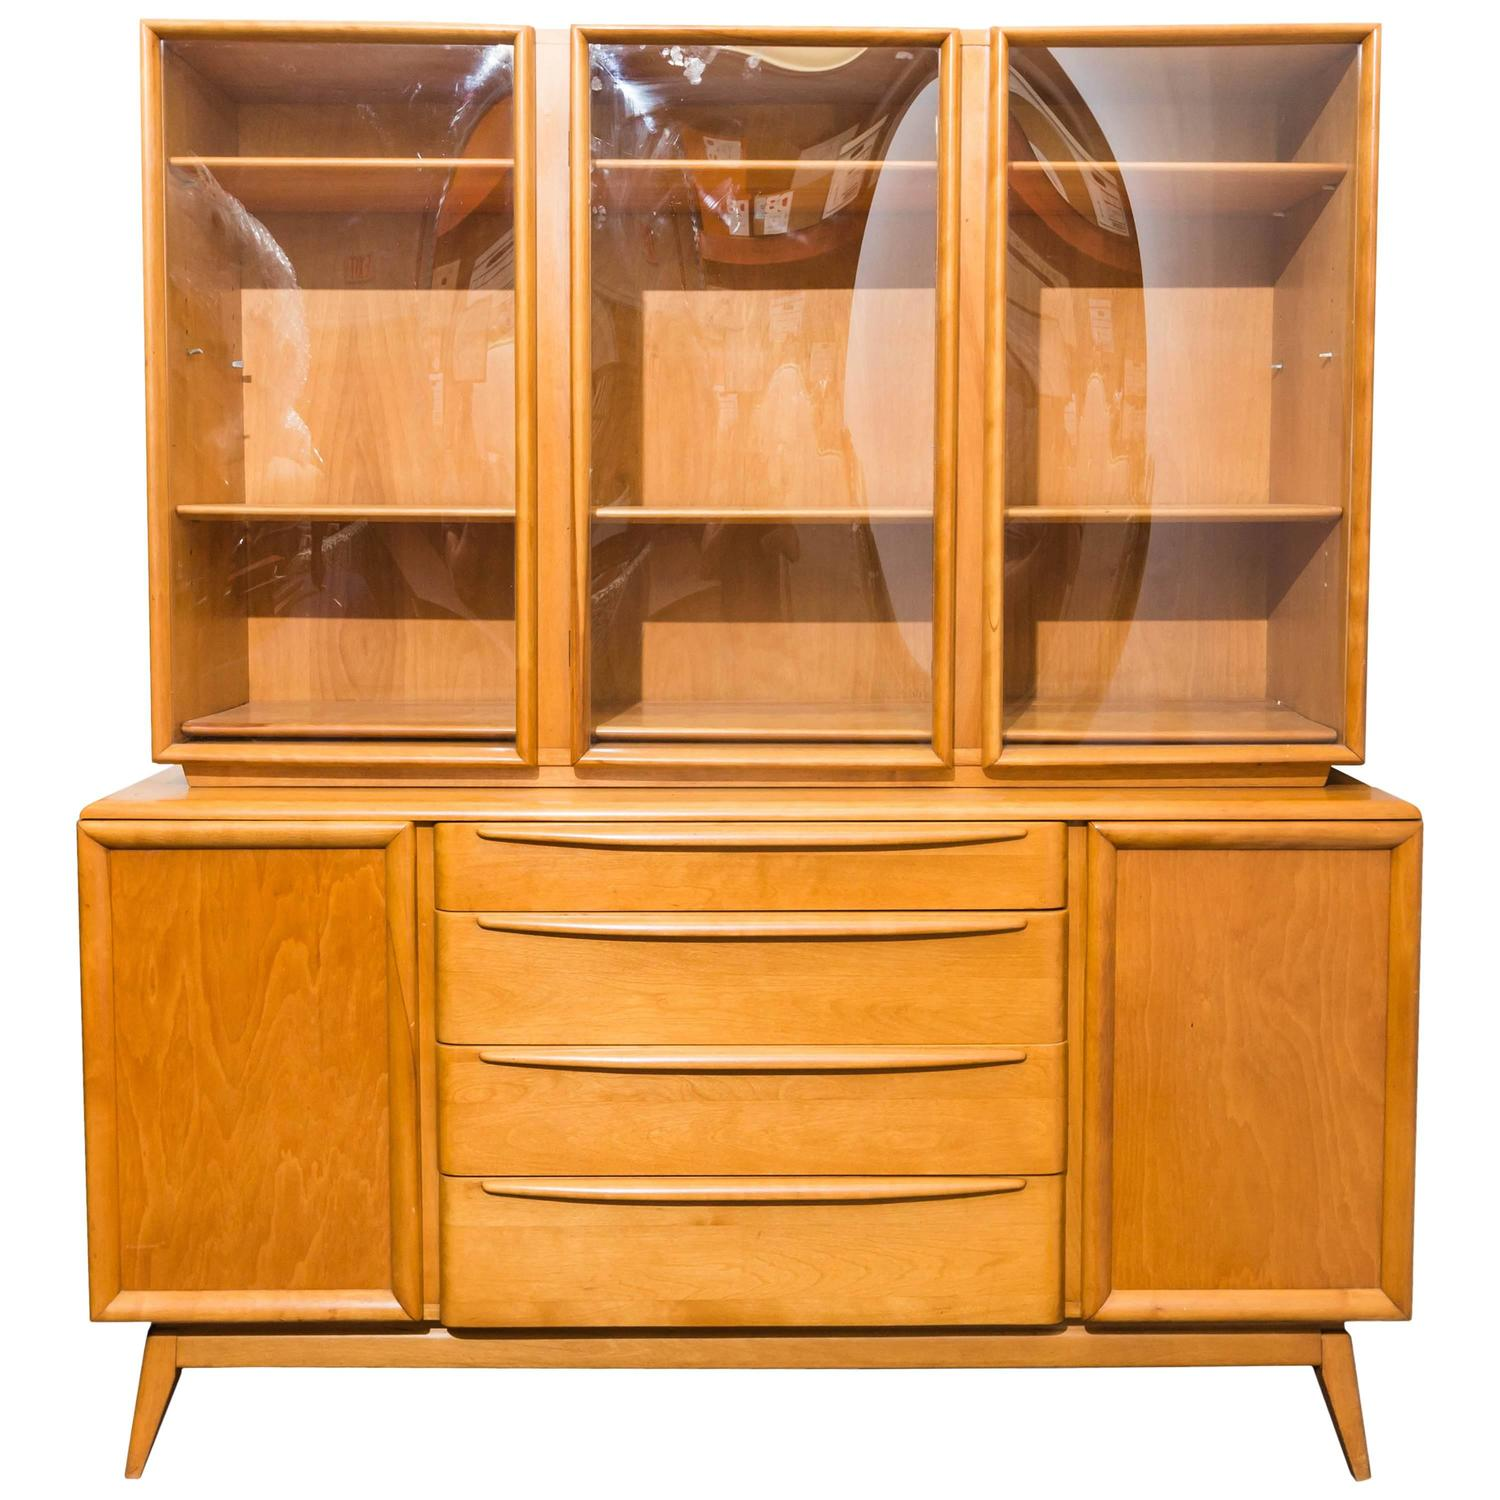 Buffets & Hutches - 25 For Sale on 1stdibs